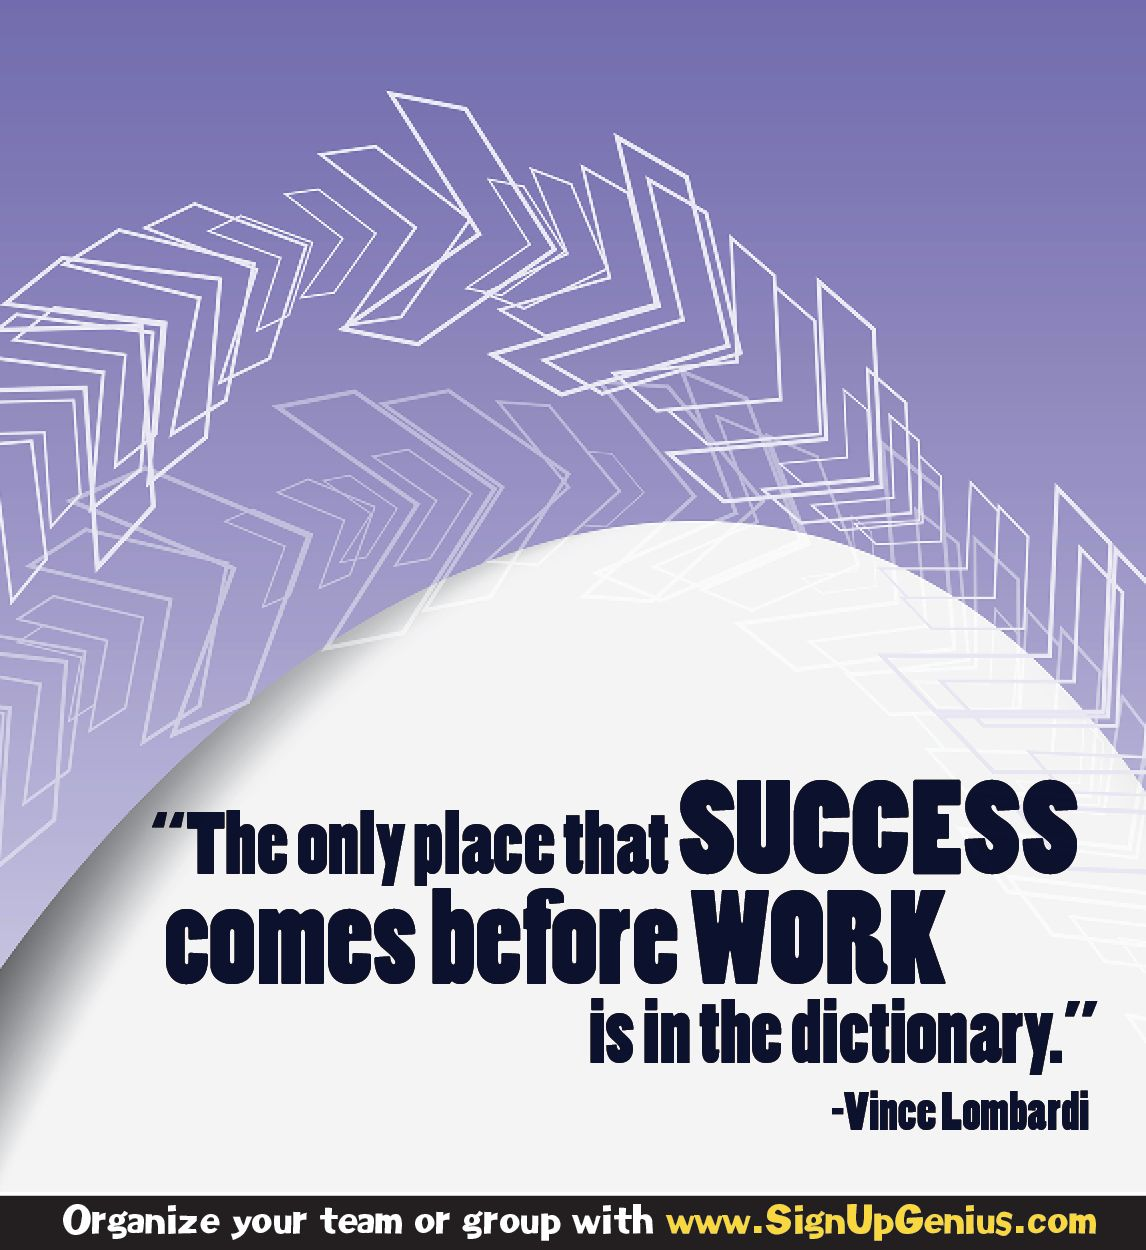 The only place that SUCCESS comes before WORK is in the